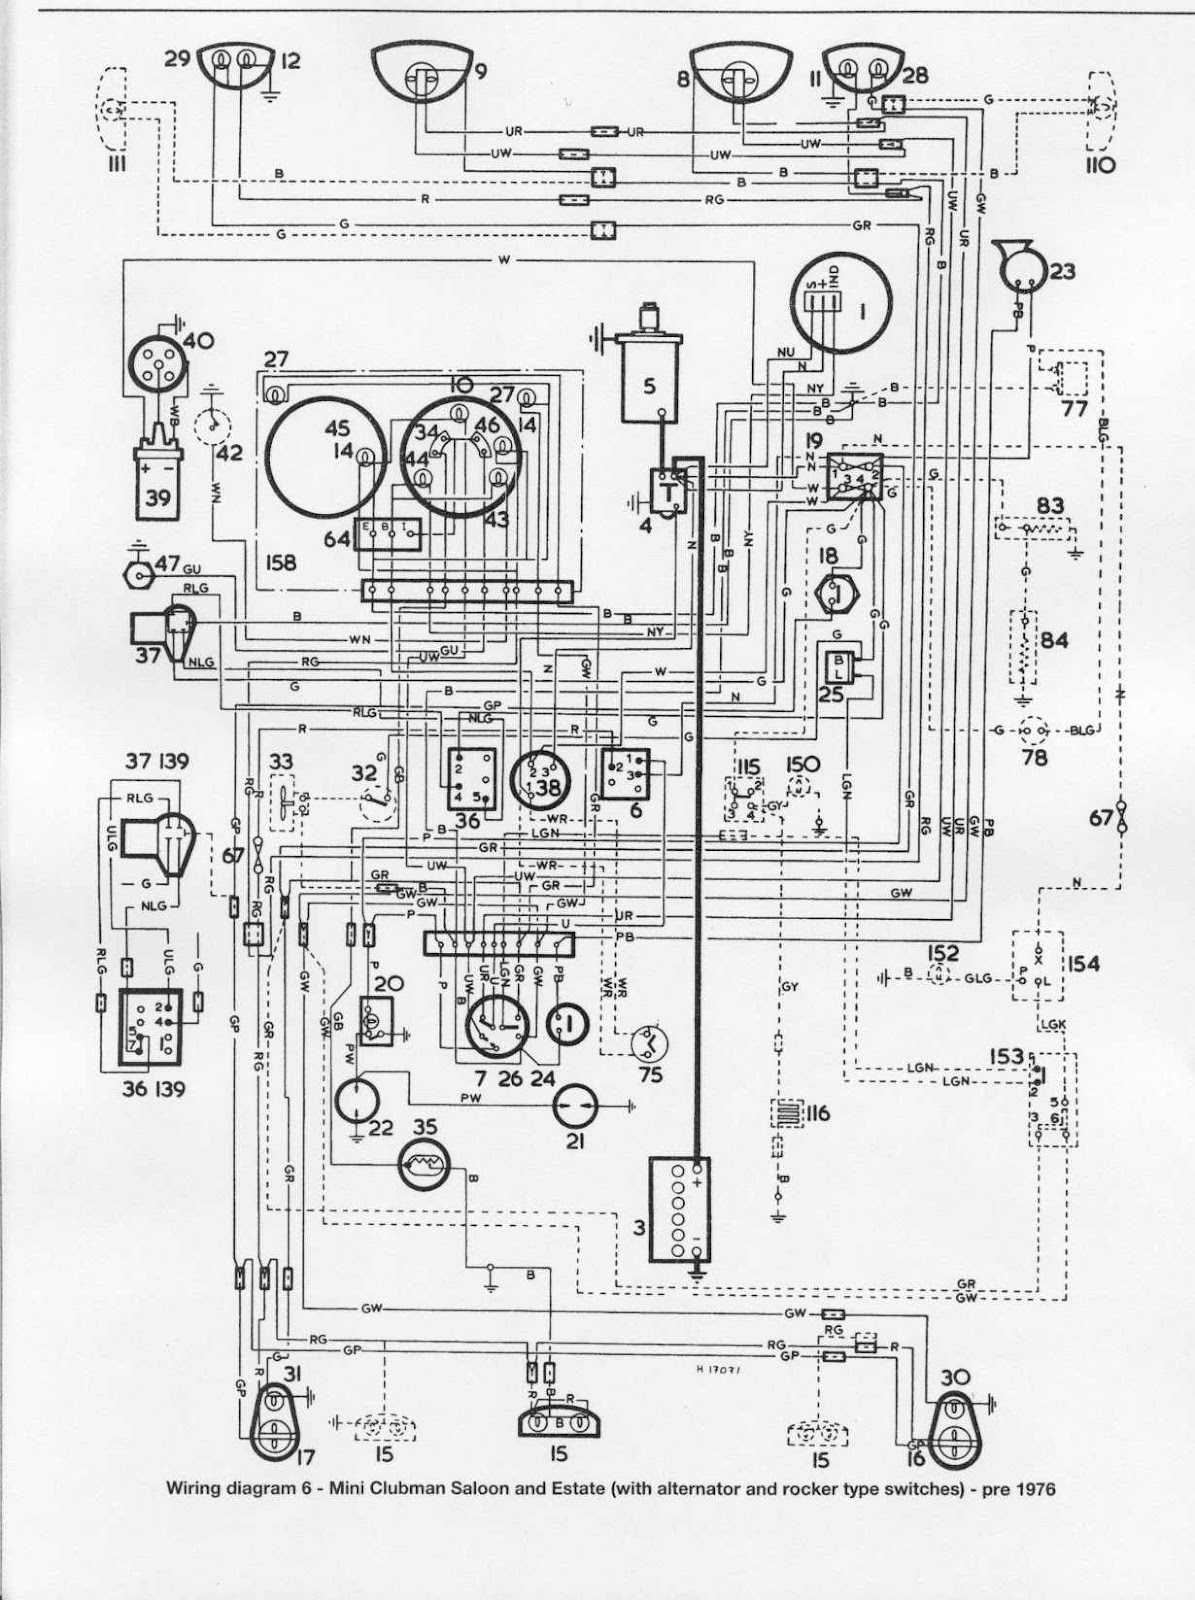 Mini Cooper 2003 Wiring Diagram. Mini. Wiring Diagram Images